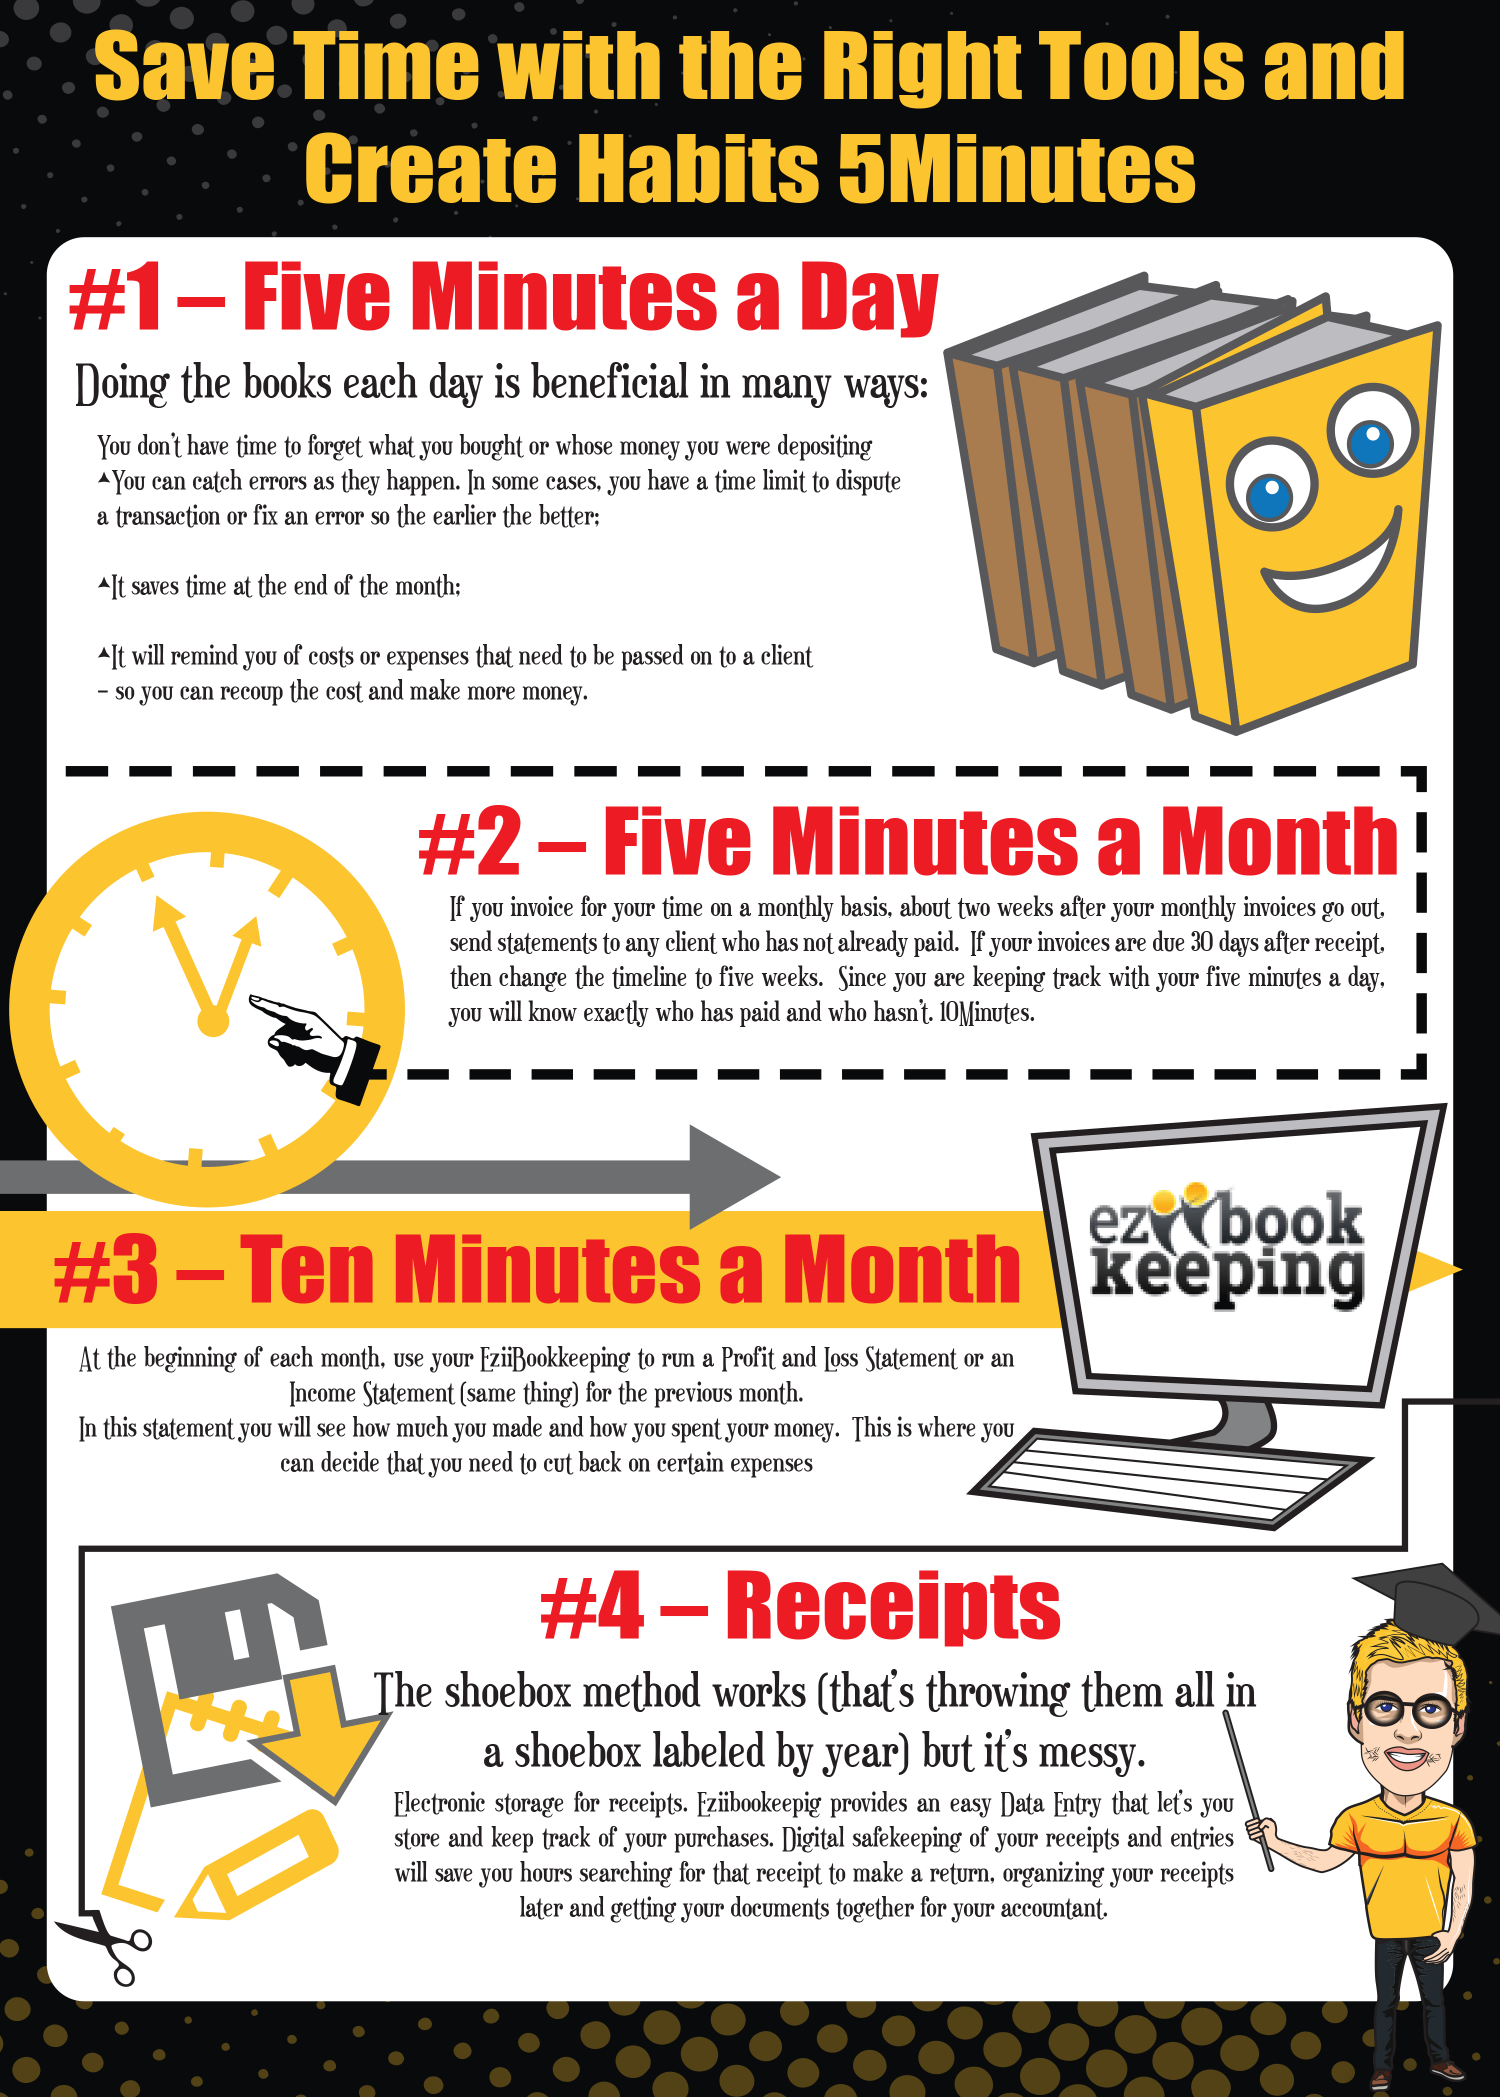 Save Time With the Right Tools and Create Habits 5 Minutes Infographic